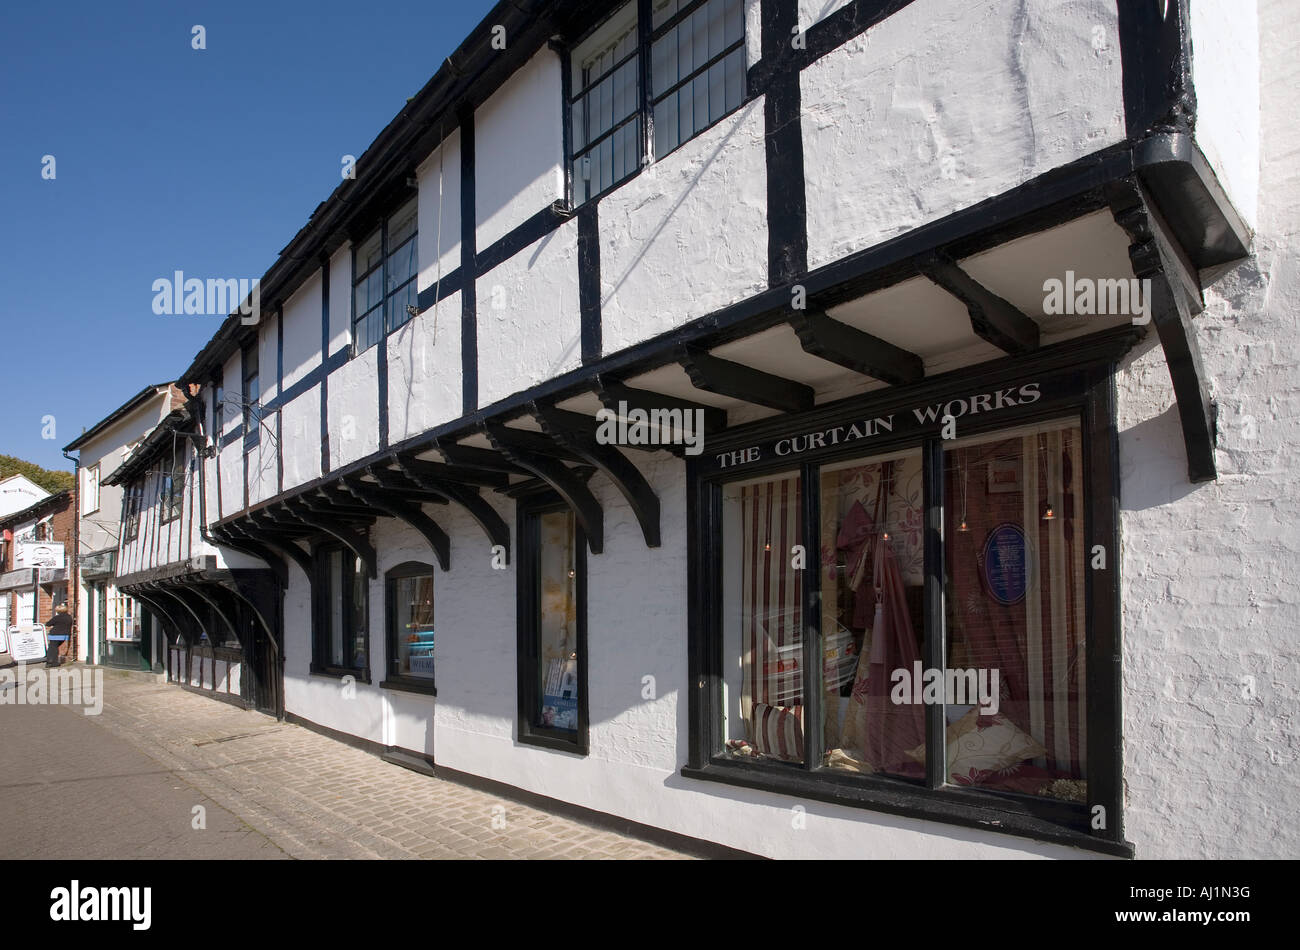 Church Lane, former Sherrffs Office, Stafford, Staffordshire, England - Stock Image